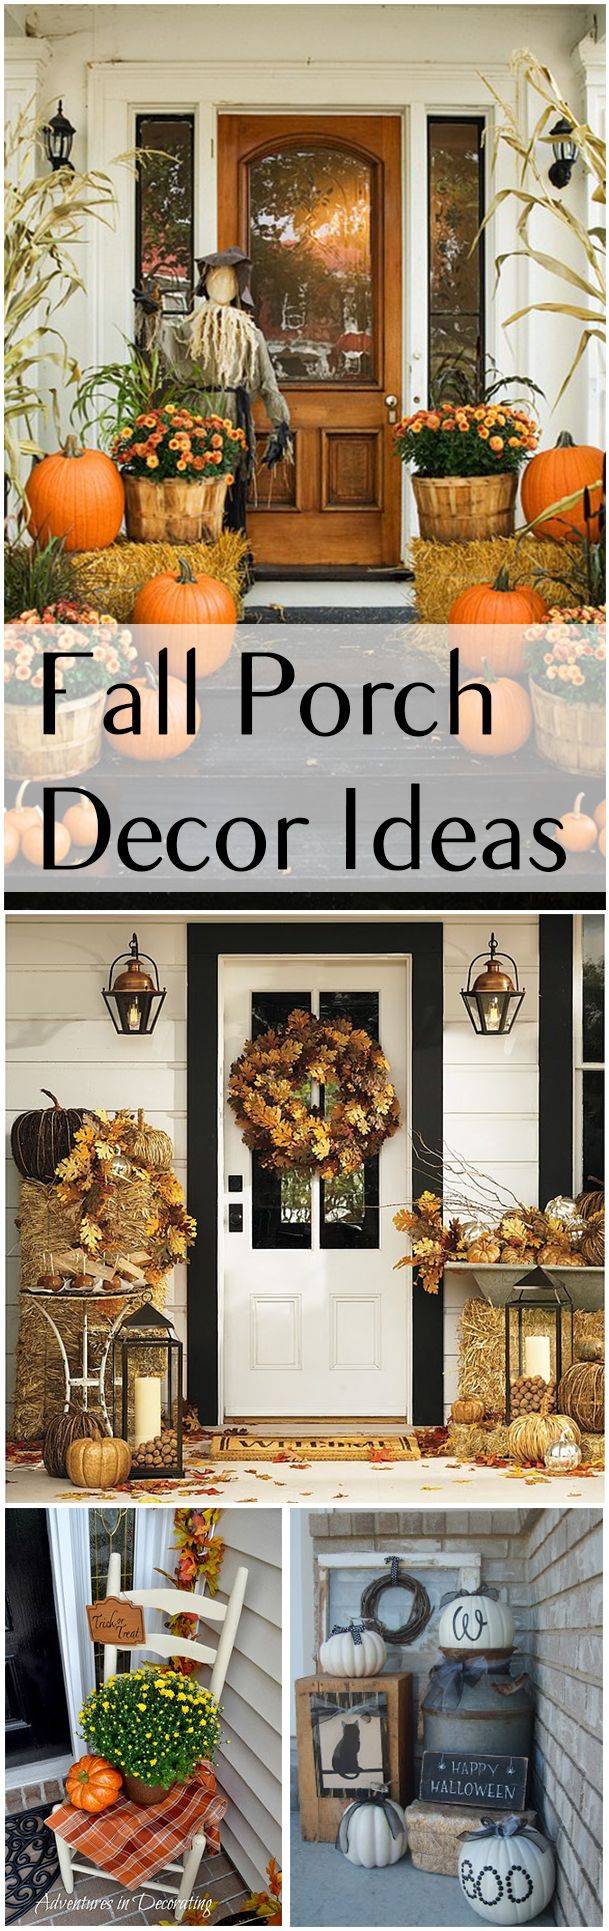 Discover amazing fall decorations for your front porch! After all, it is the first place your guests see as they arrive to your home!